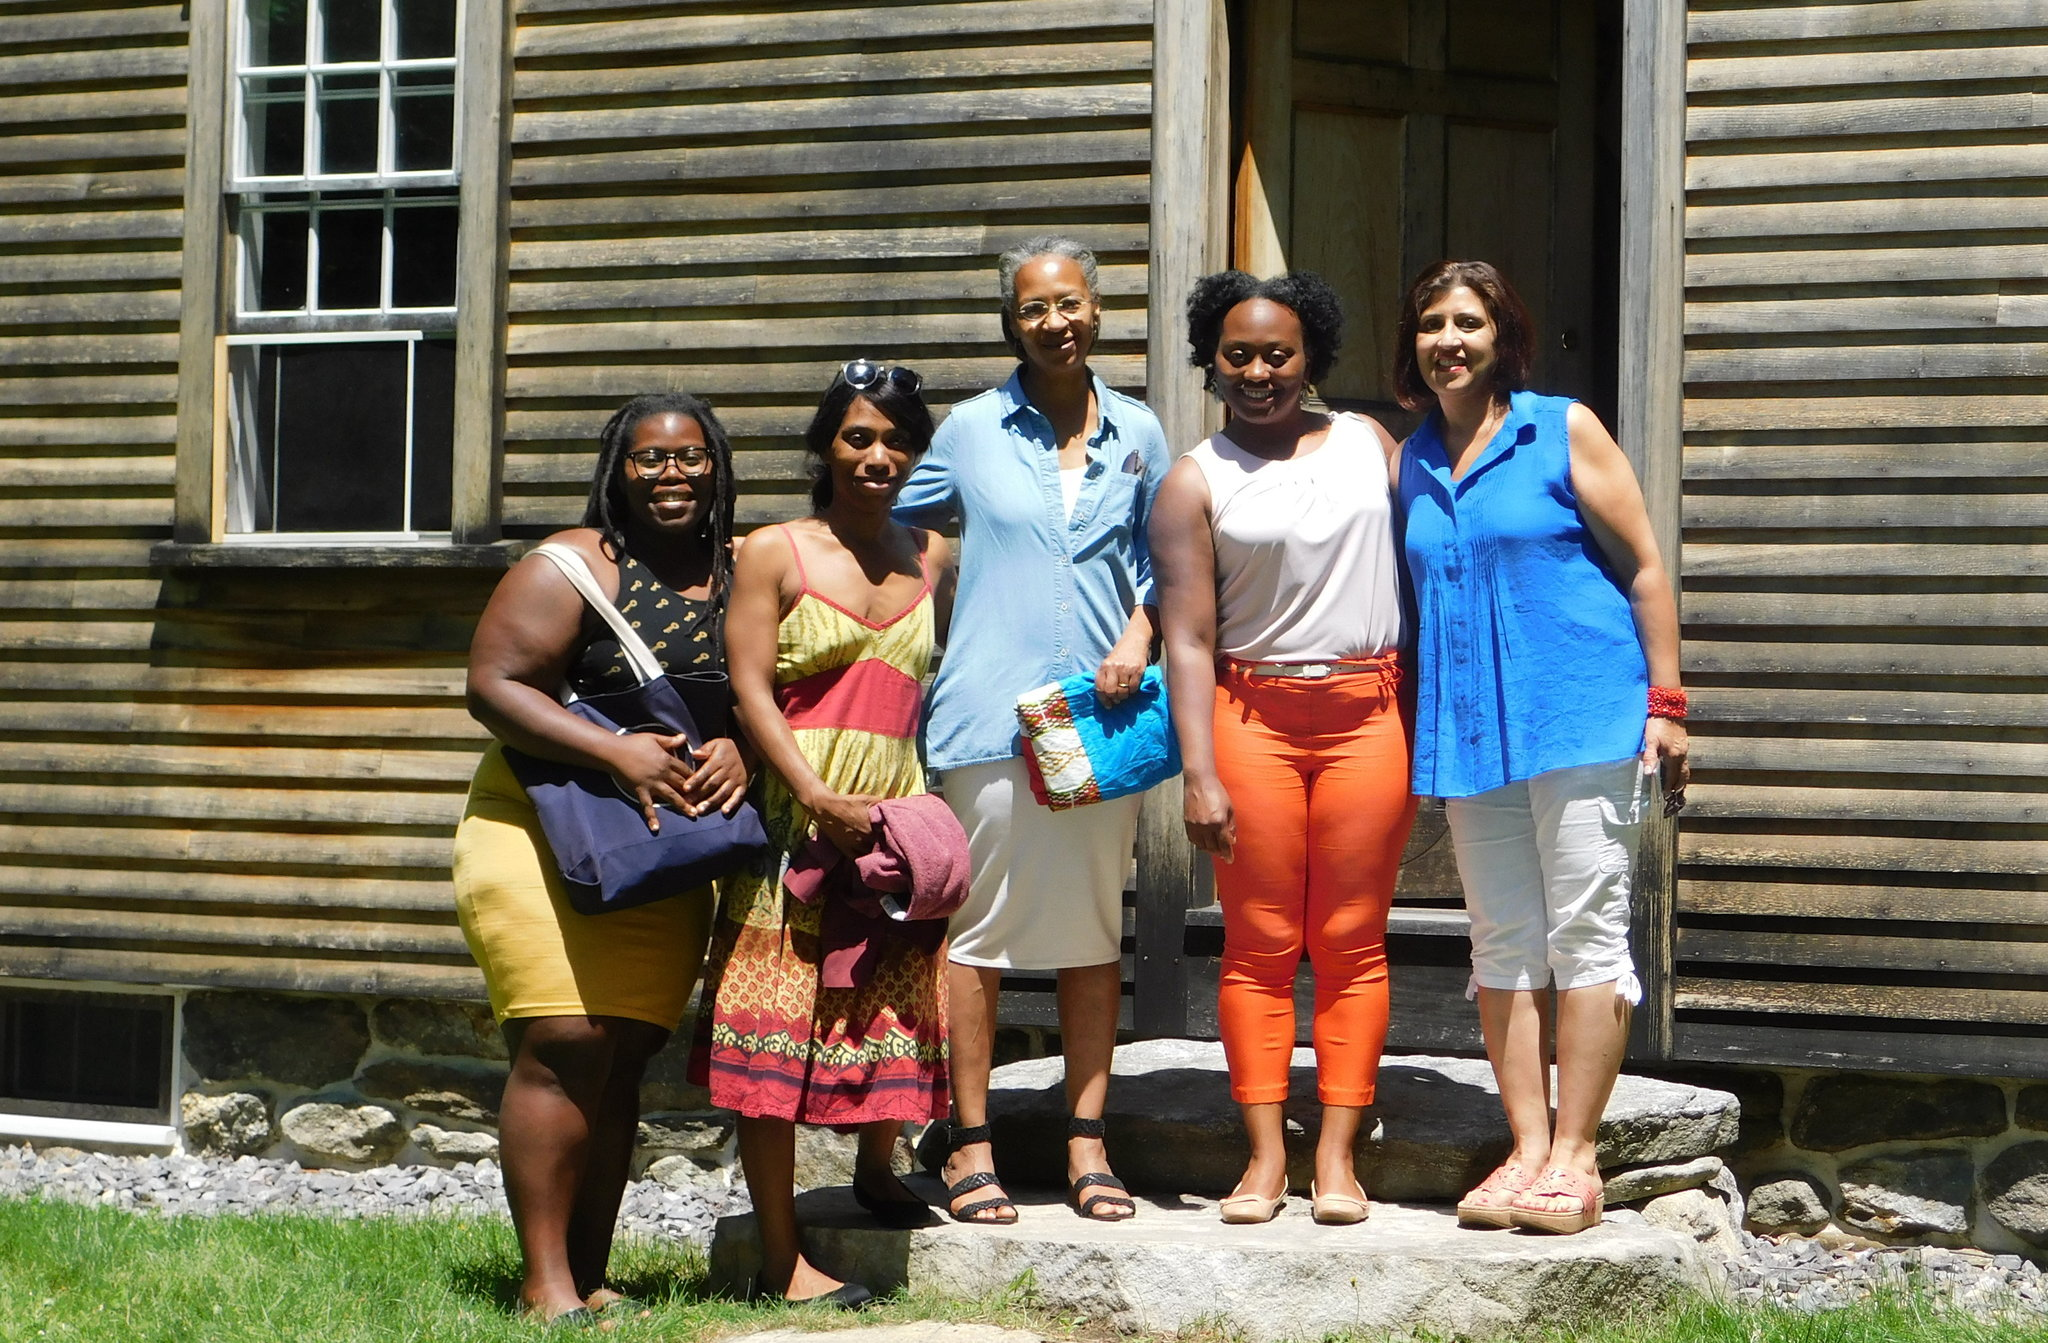 Greenidge sisters Kaitlyn, Kirsten, (left) and Kerri (second from right), here with board members Maria (center) and Punita (right), visit the Robbins House on a road trip in search of strong female role models.